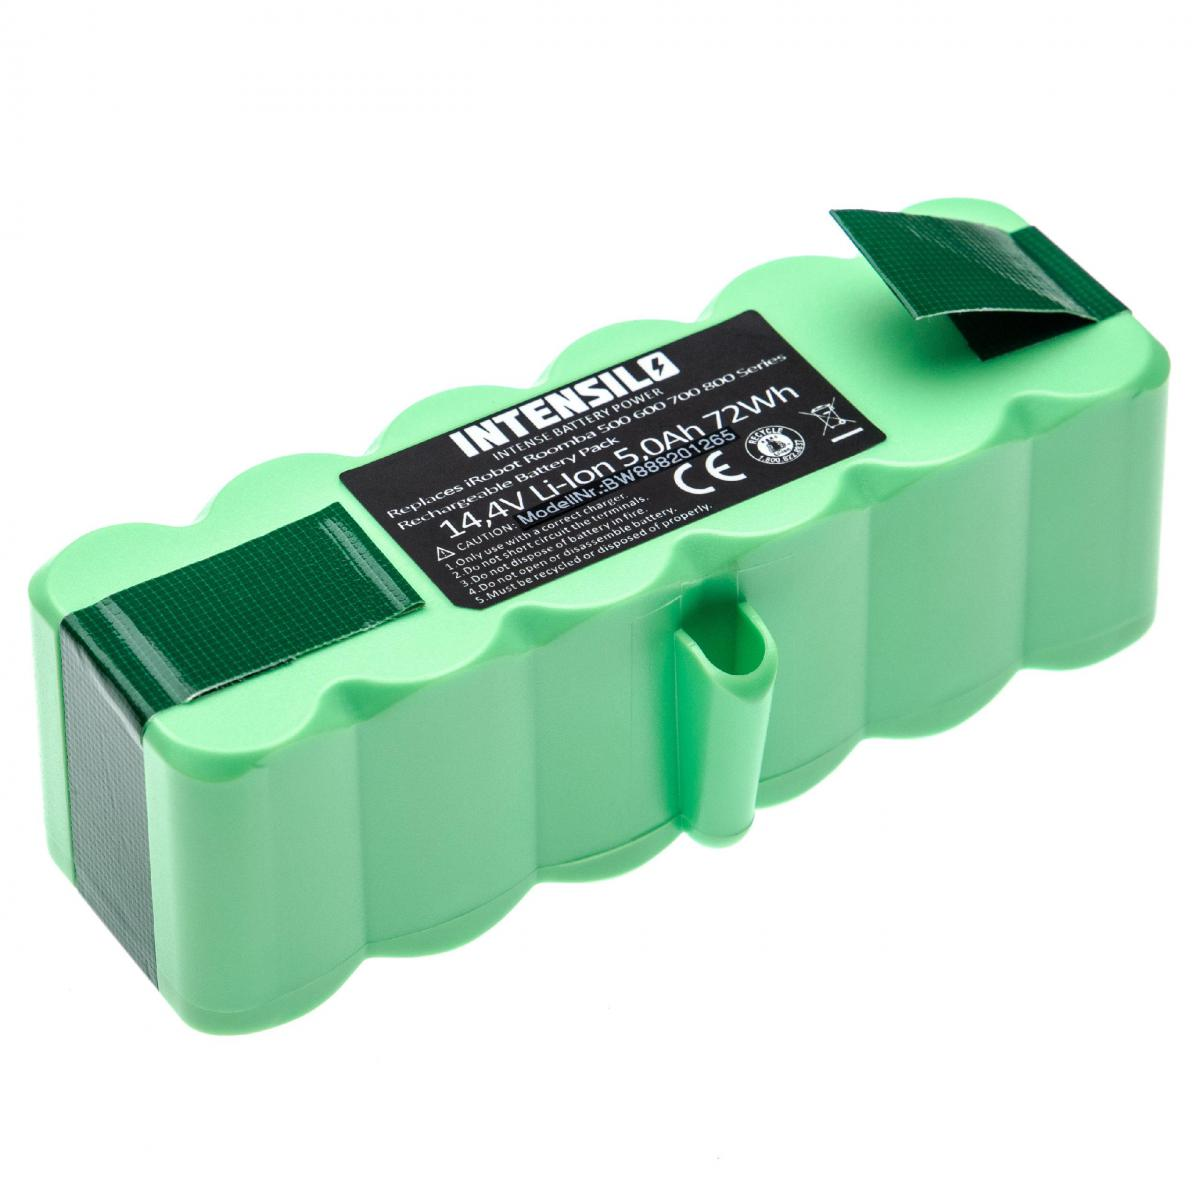 Vhbw INTENSILO batterie compatible avec iRobot Roomba 801, 805, 850, 860, 877, 890, 891, 895 aspirateur Home Cleaner (5000mAh